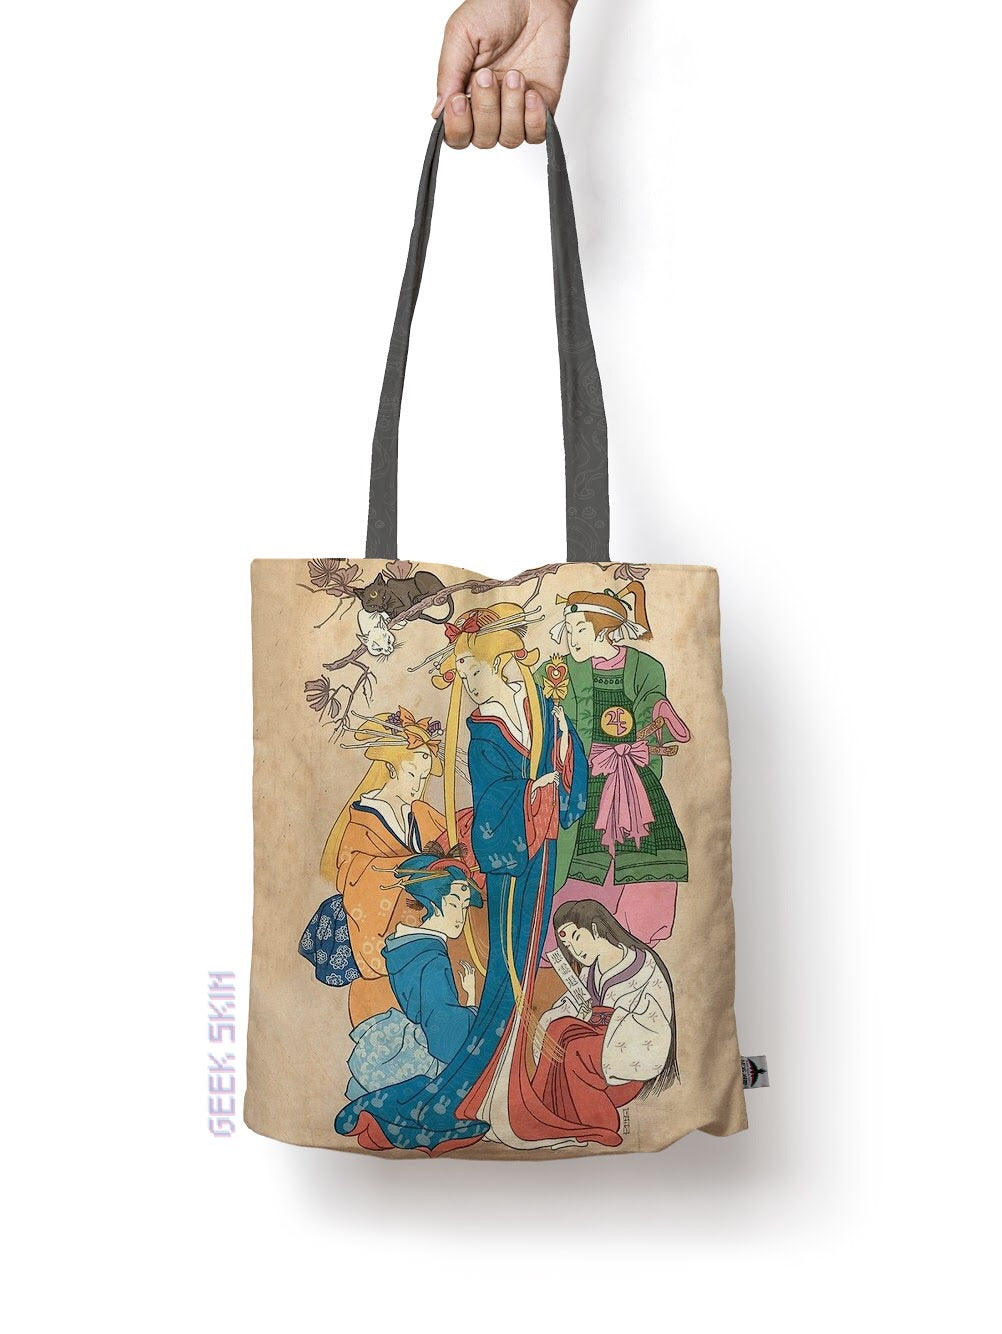 Samurai sailors Tote bag sailor moon japon - Geek Skin - Geek Underwear -